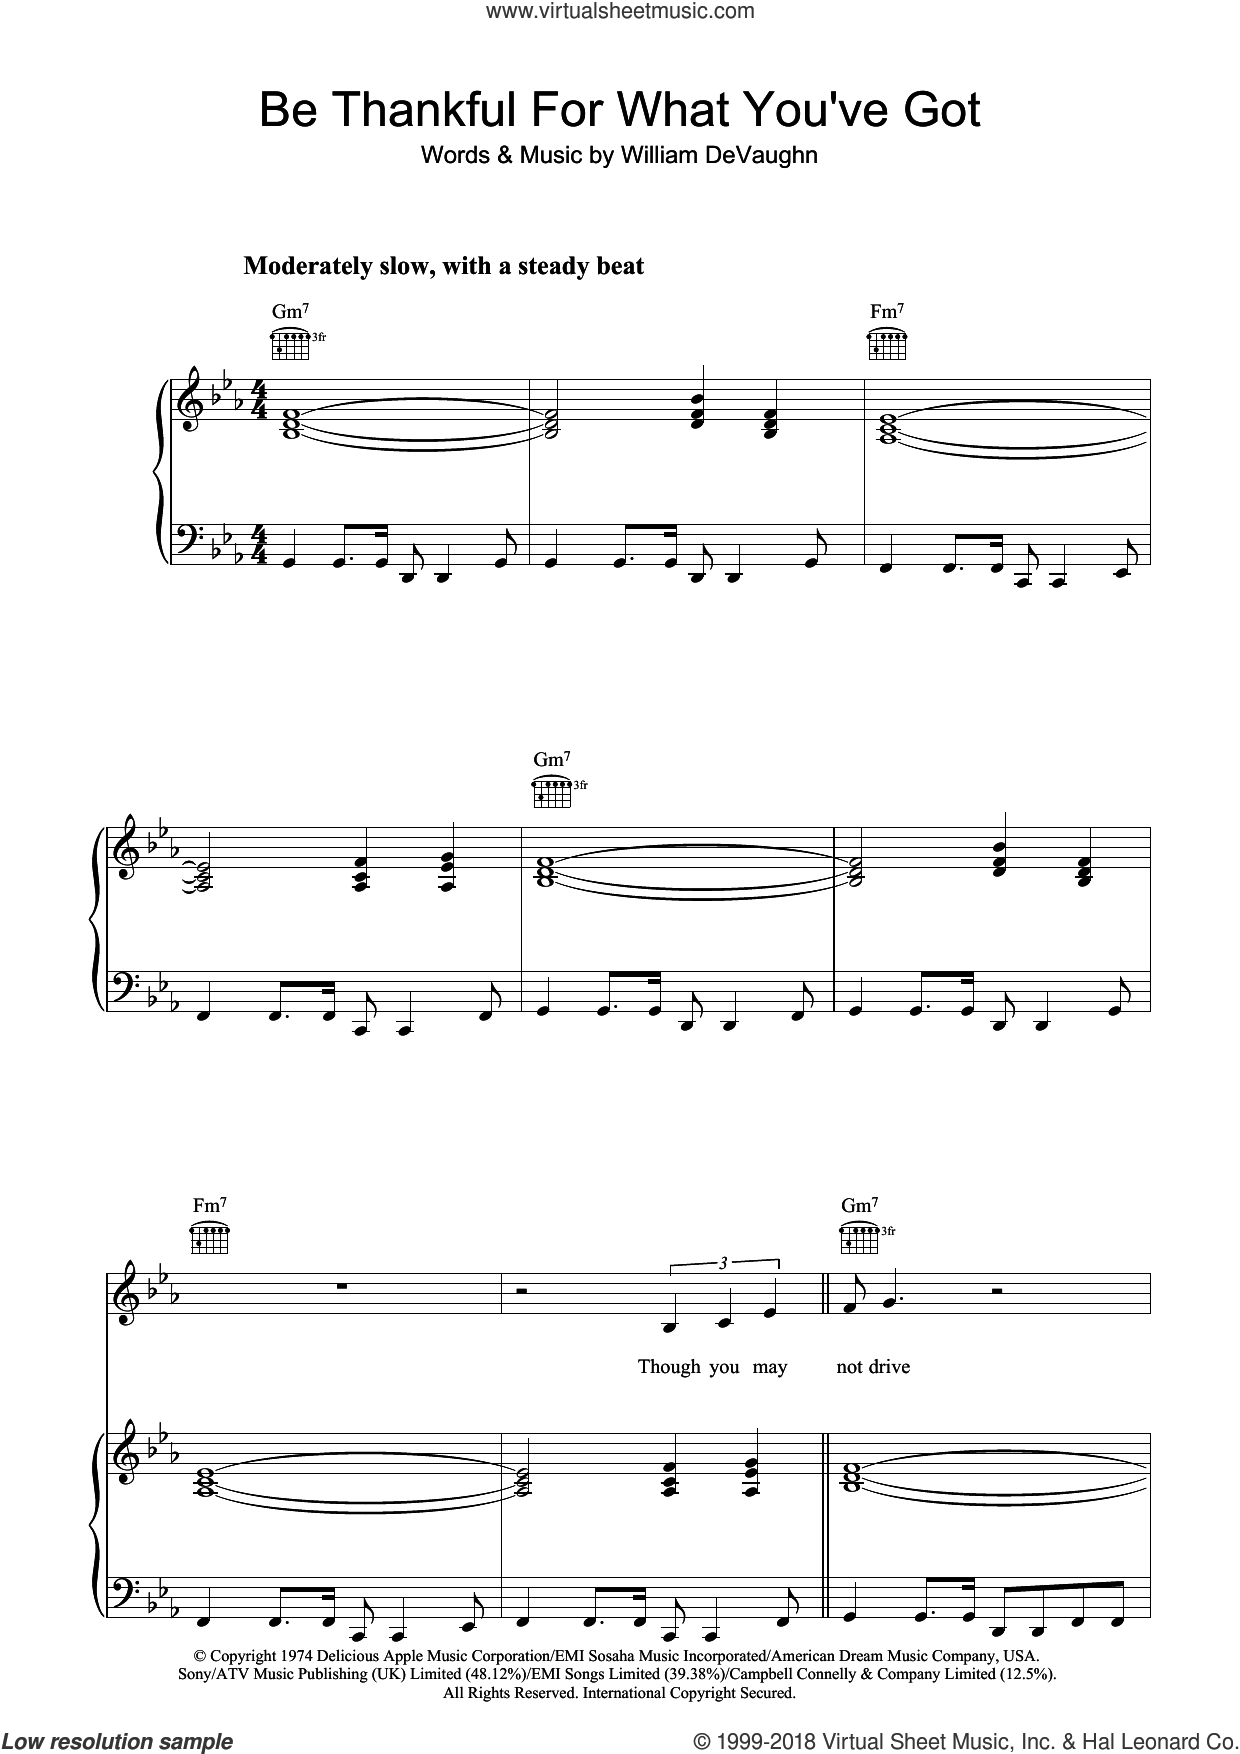 Be Thankful For What You Got sheet music for voice, piano or guitar by William DeVaughan and William DeVaughn, intermediate. Score Image Preview.